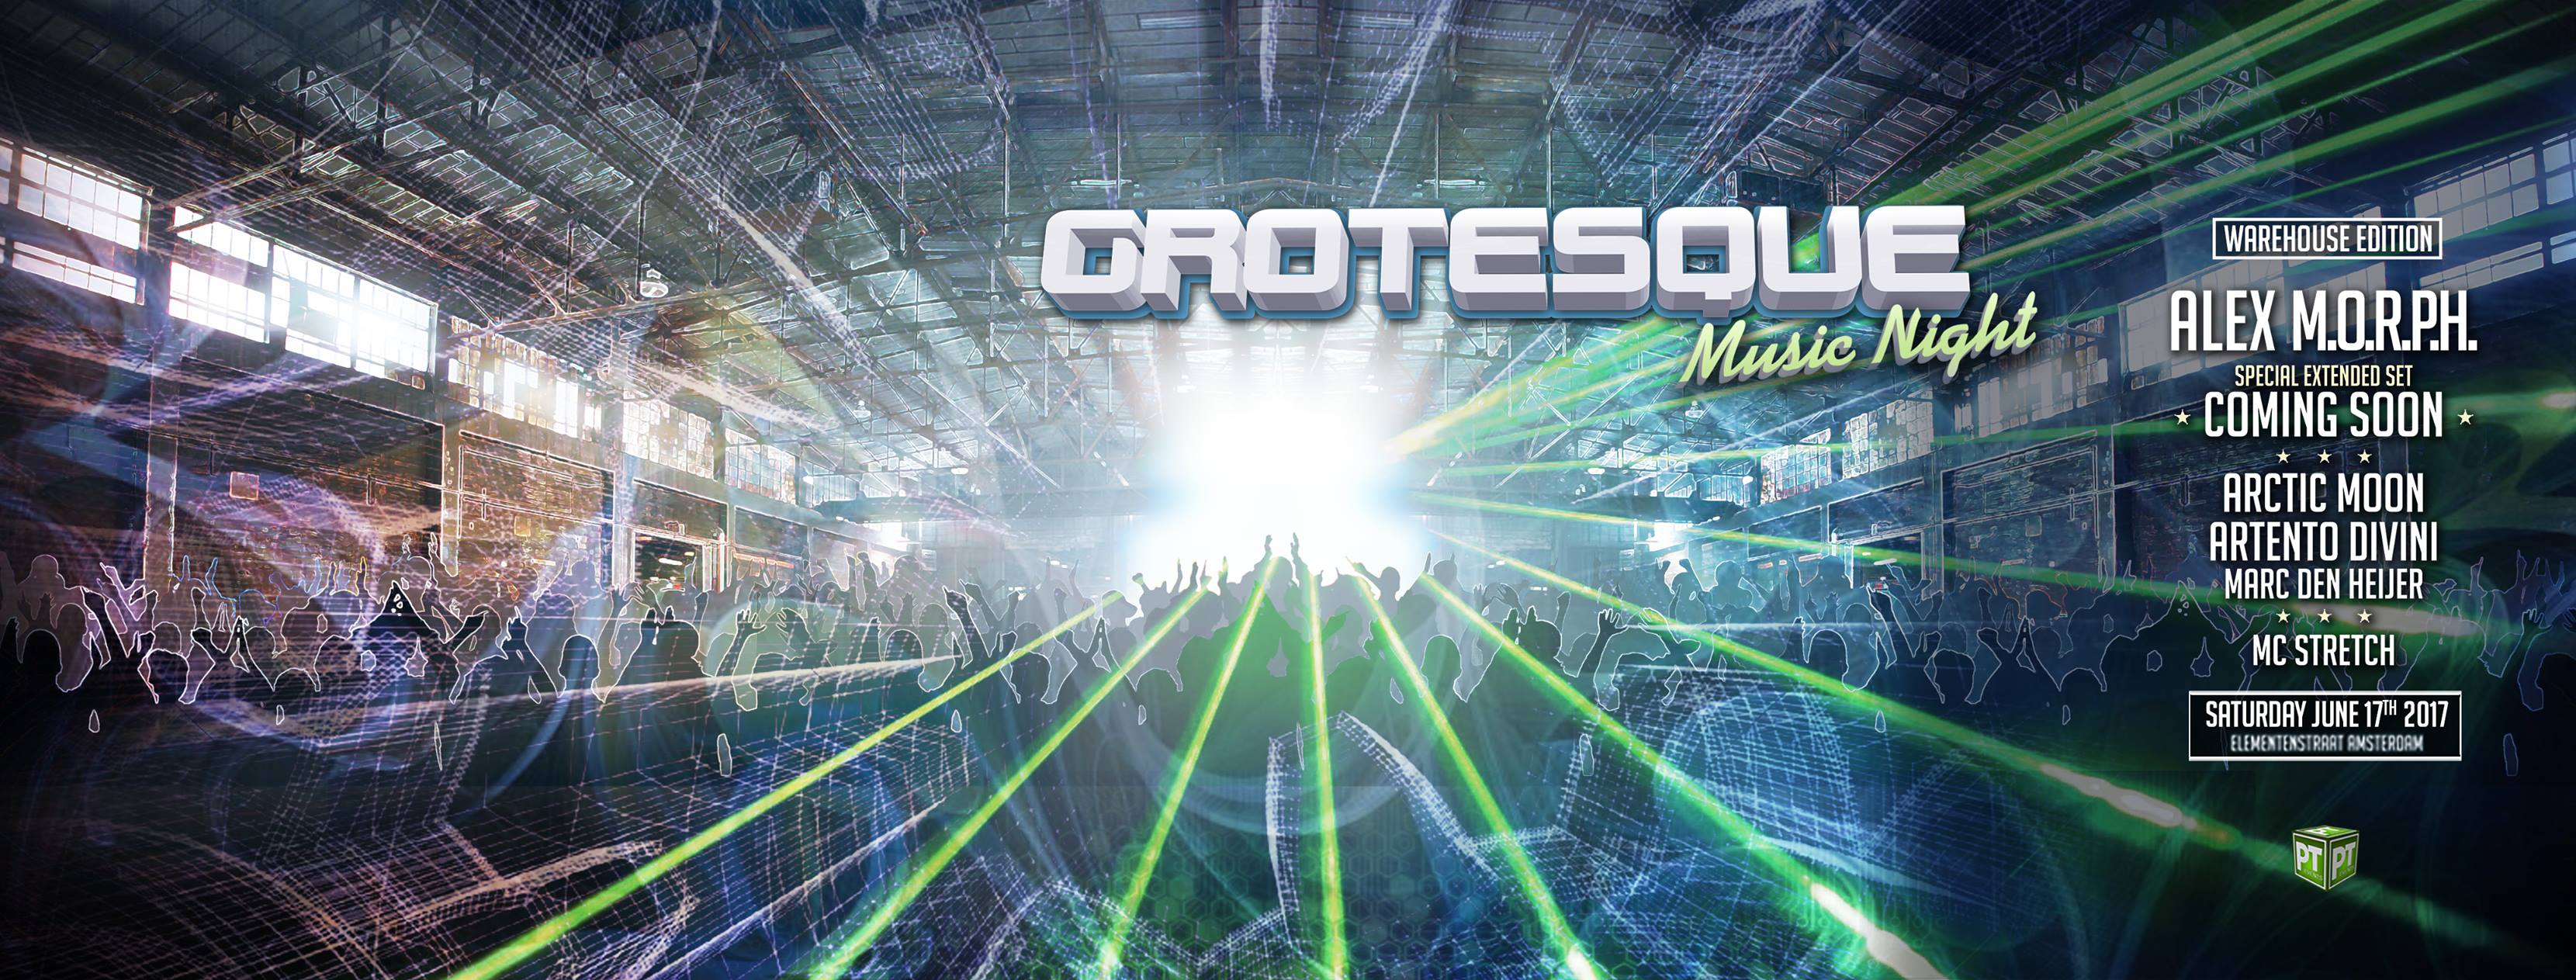 17.06.2017 Grotesque Music Night, Amsterdam